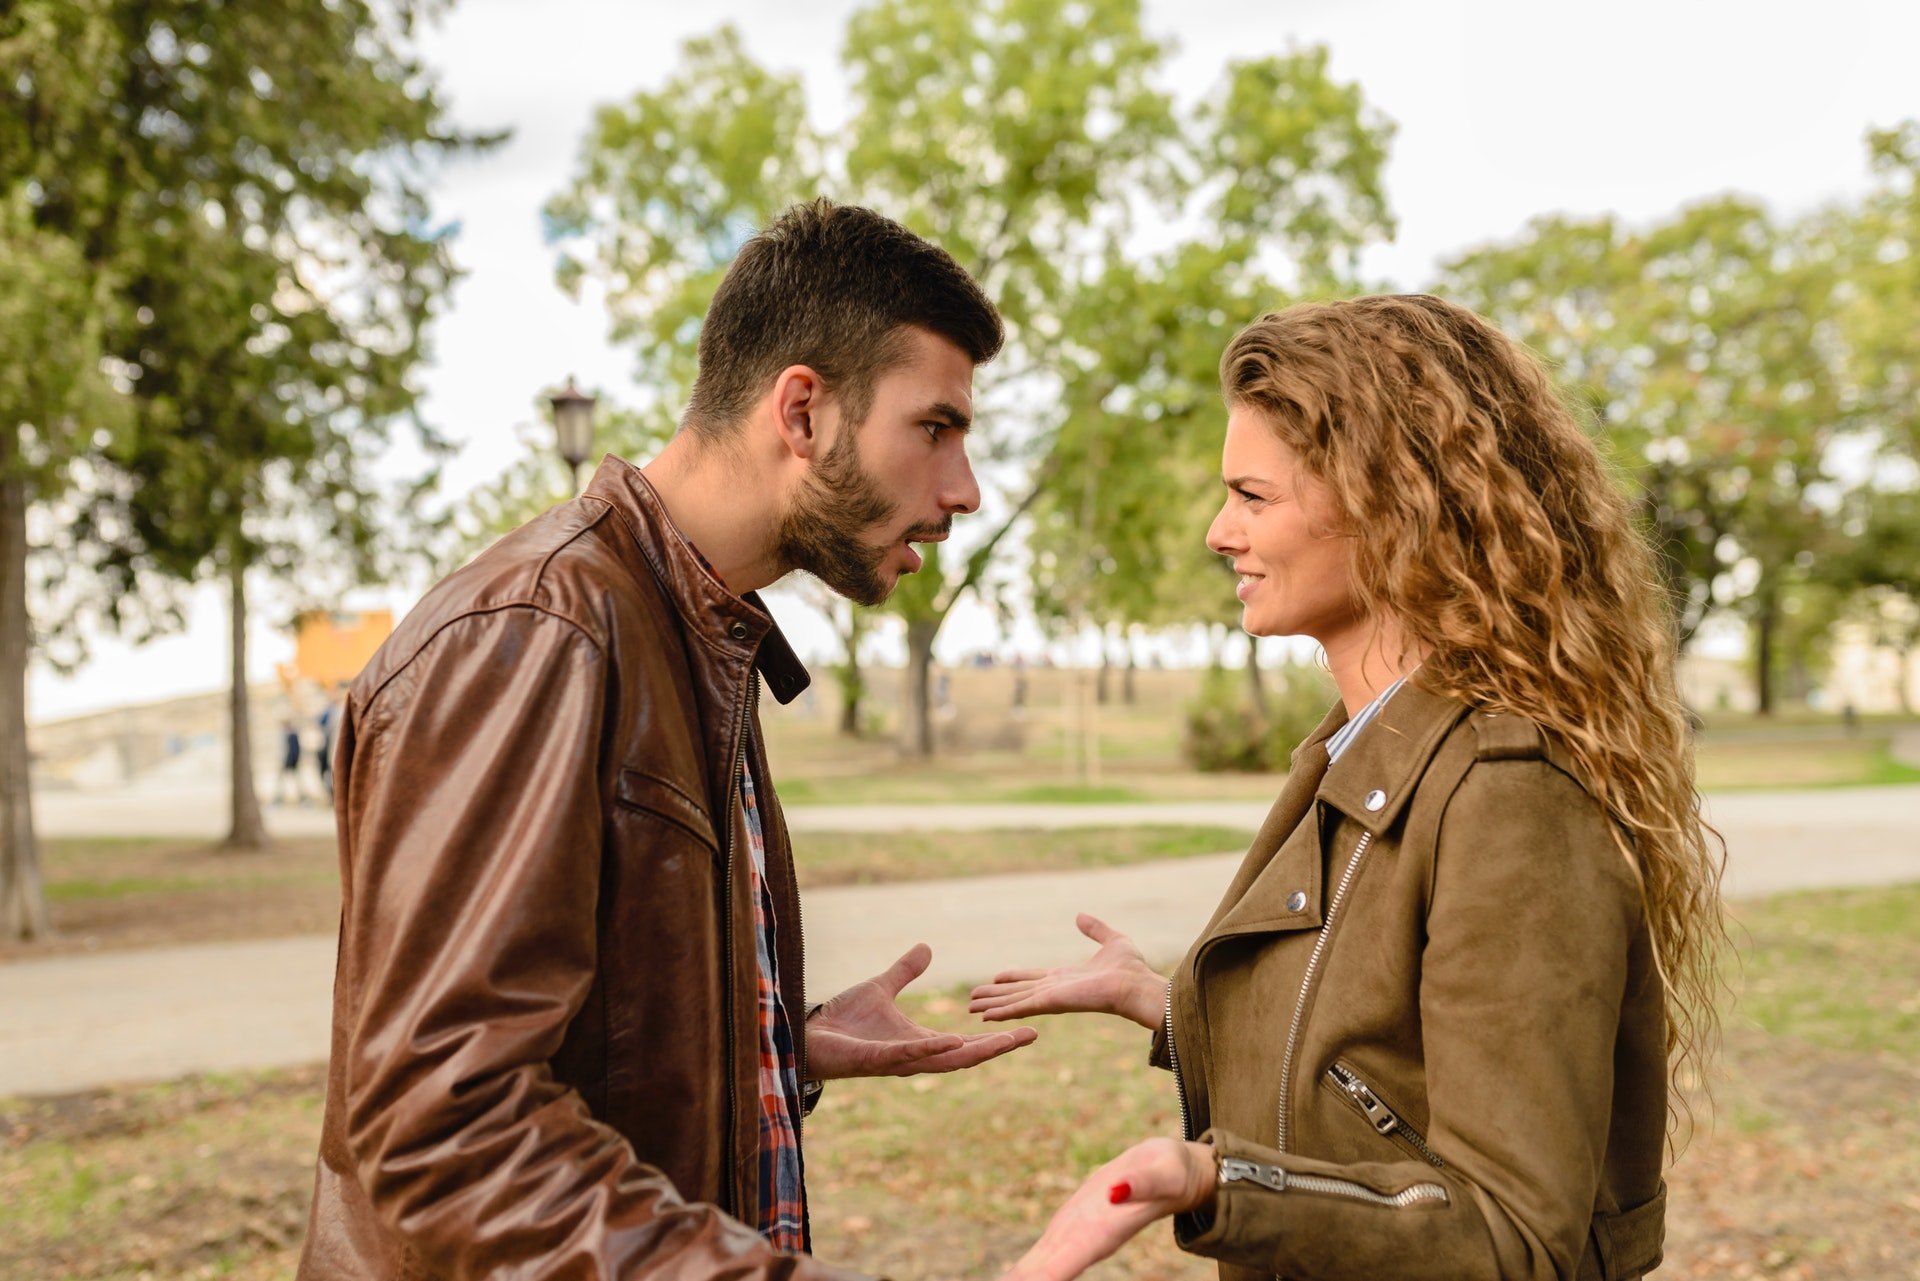 How to Improve a Strained Relationship